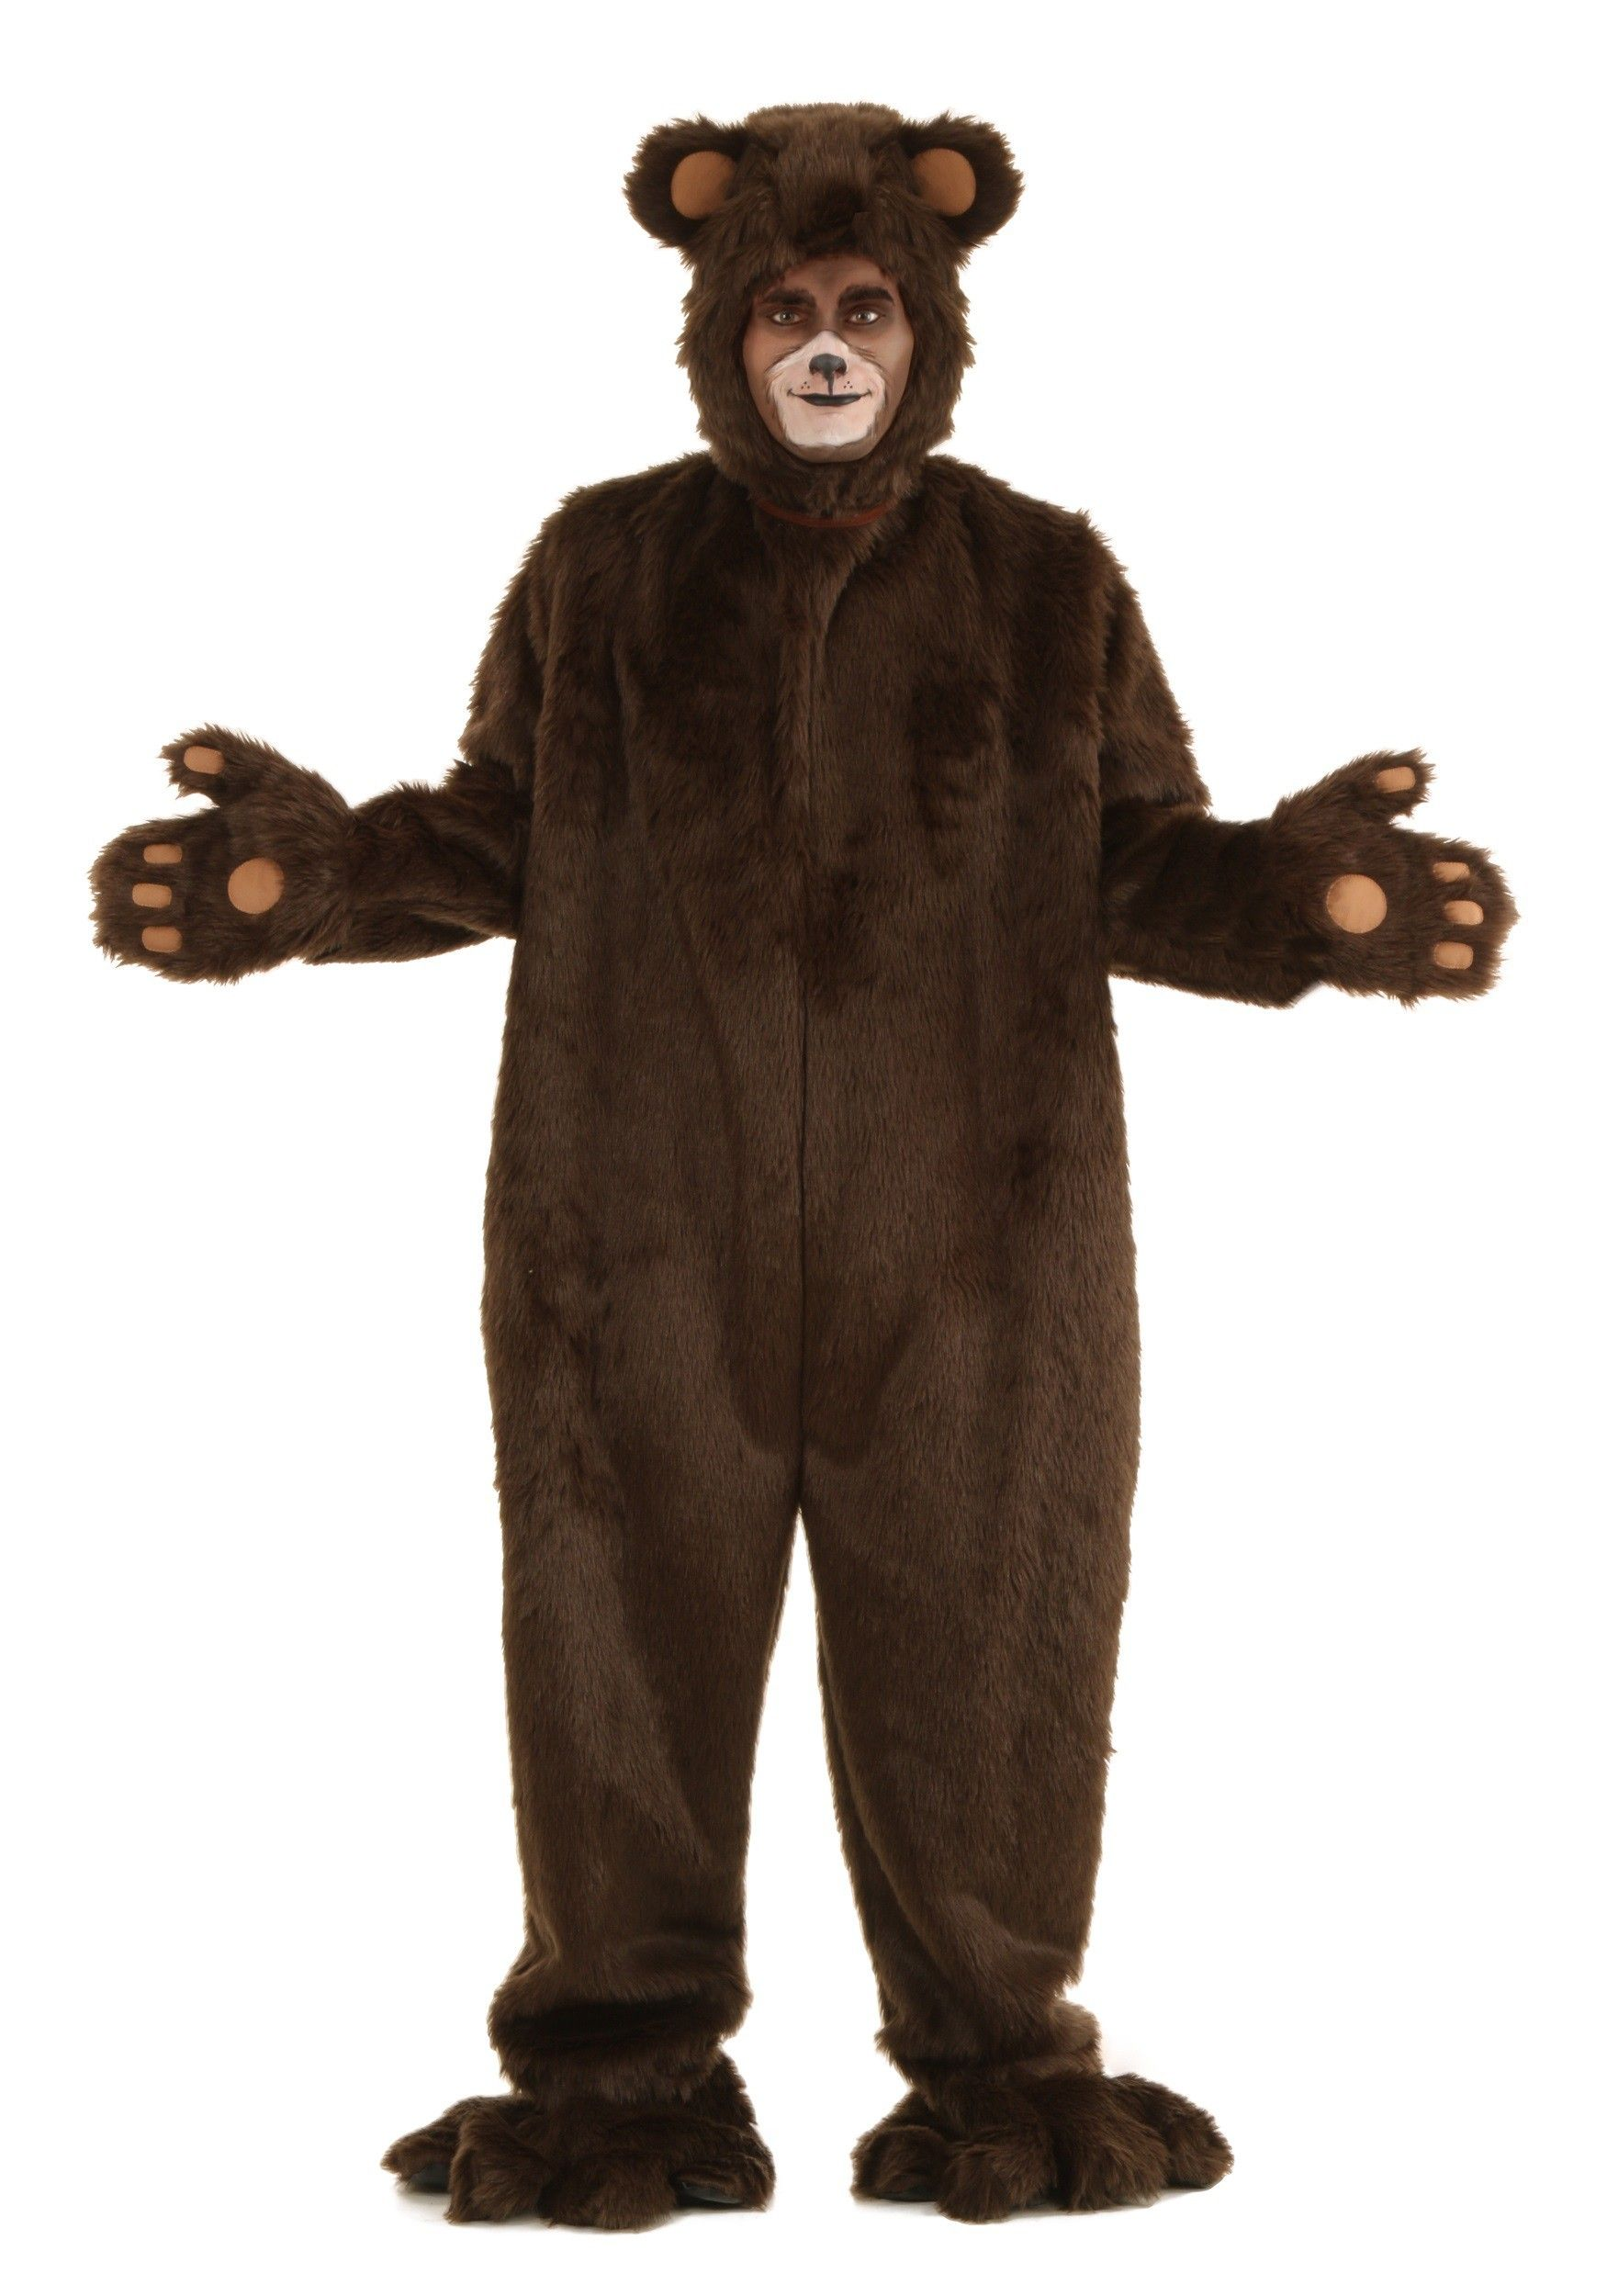 Adult Deluxe Furry Brown Bear Costume | Bear costume and Costumes